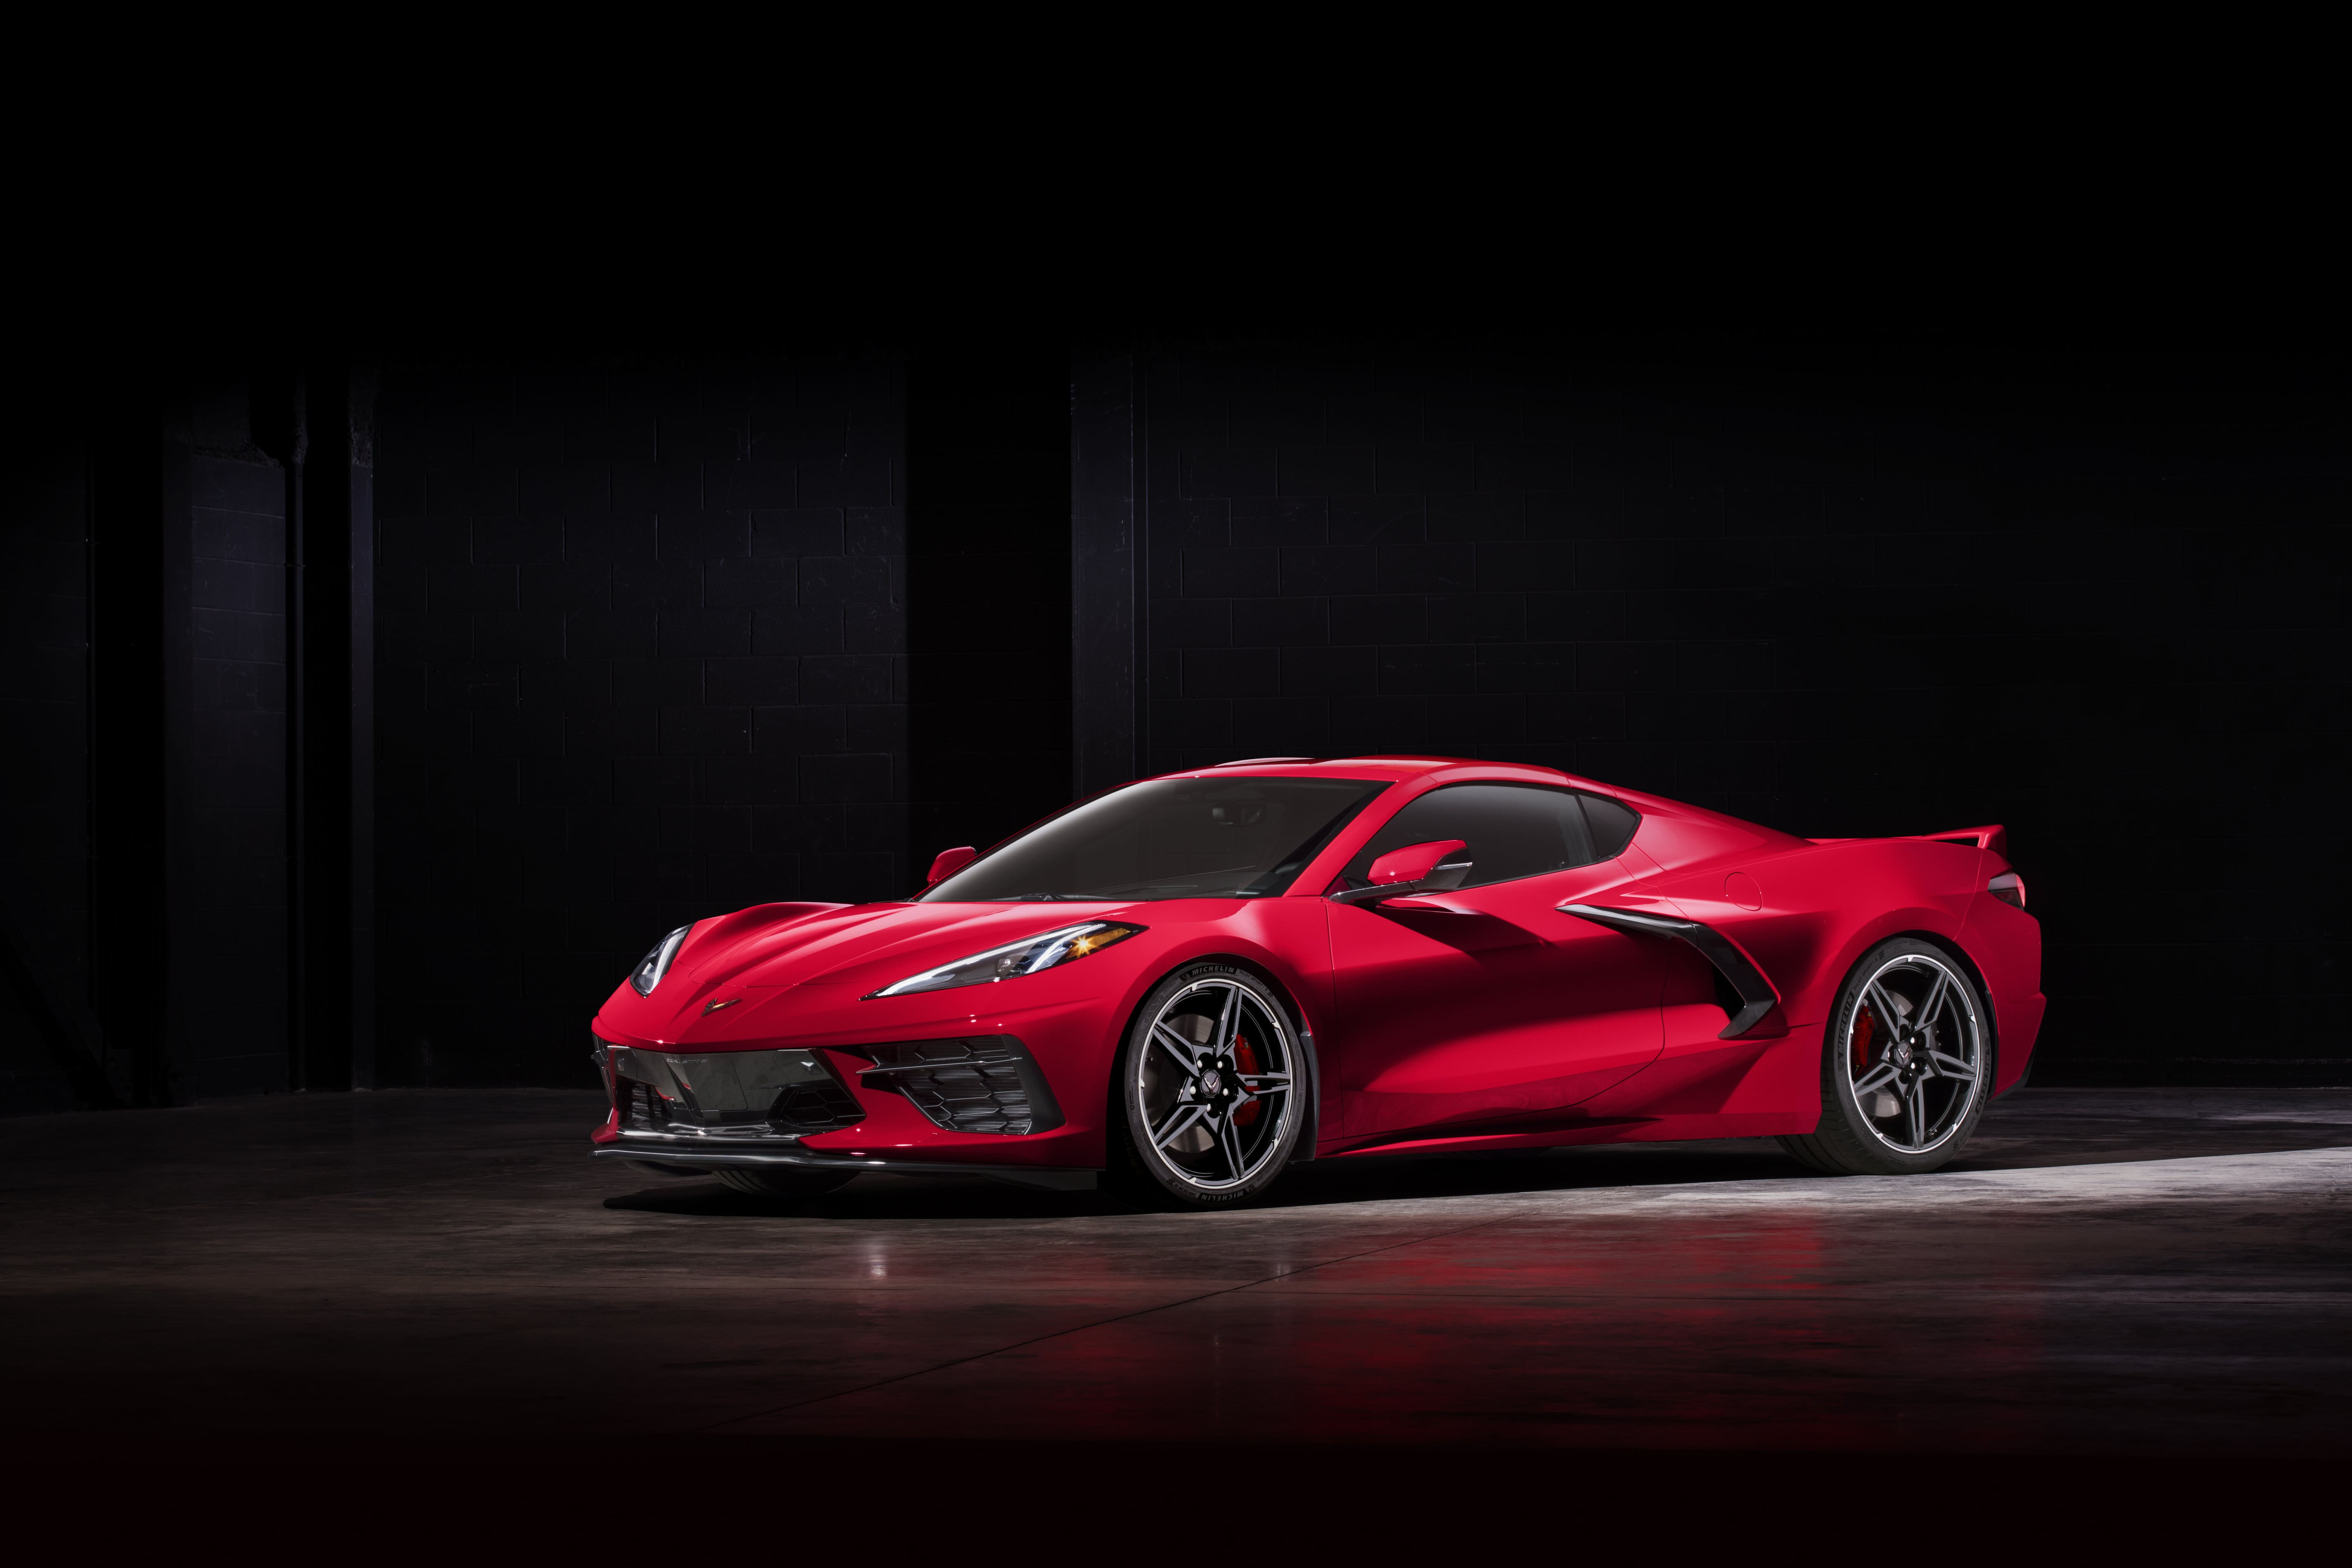 74 A 2020 Chevrolet Corvette C8 Wallpaper